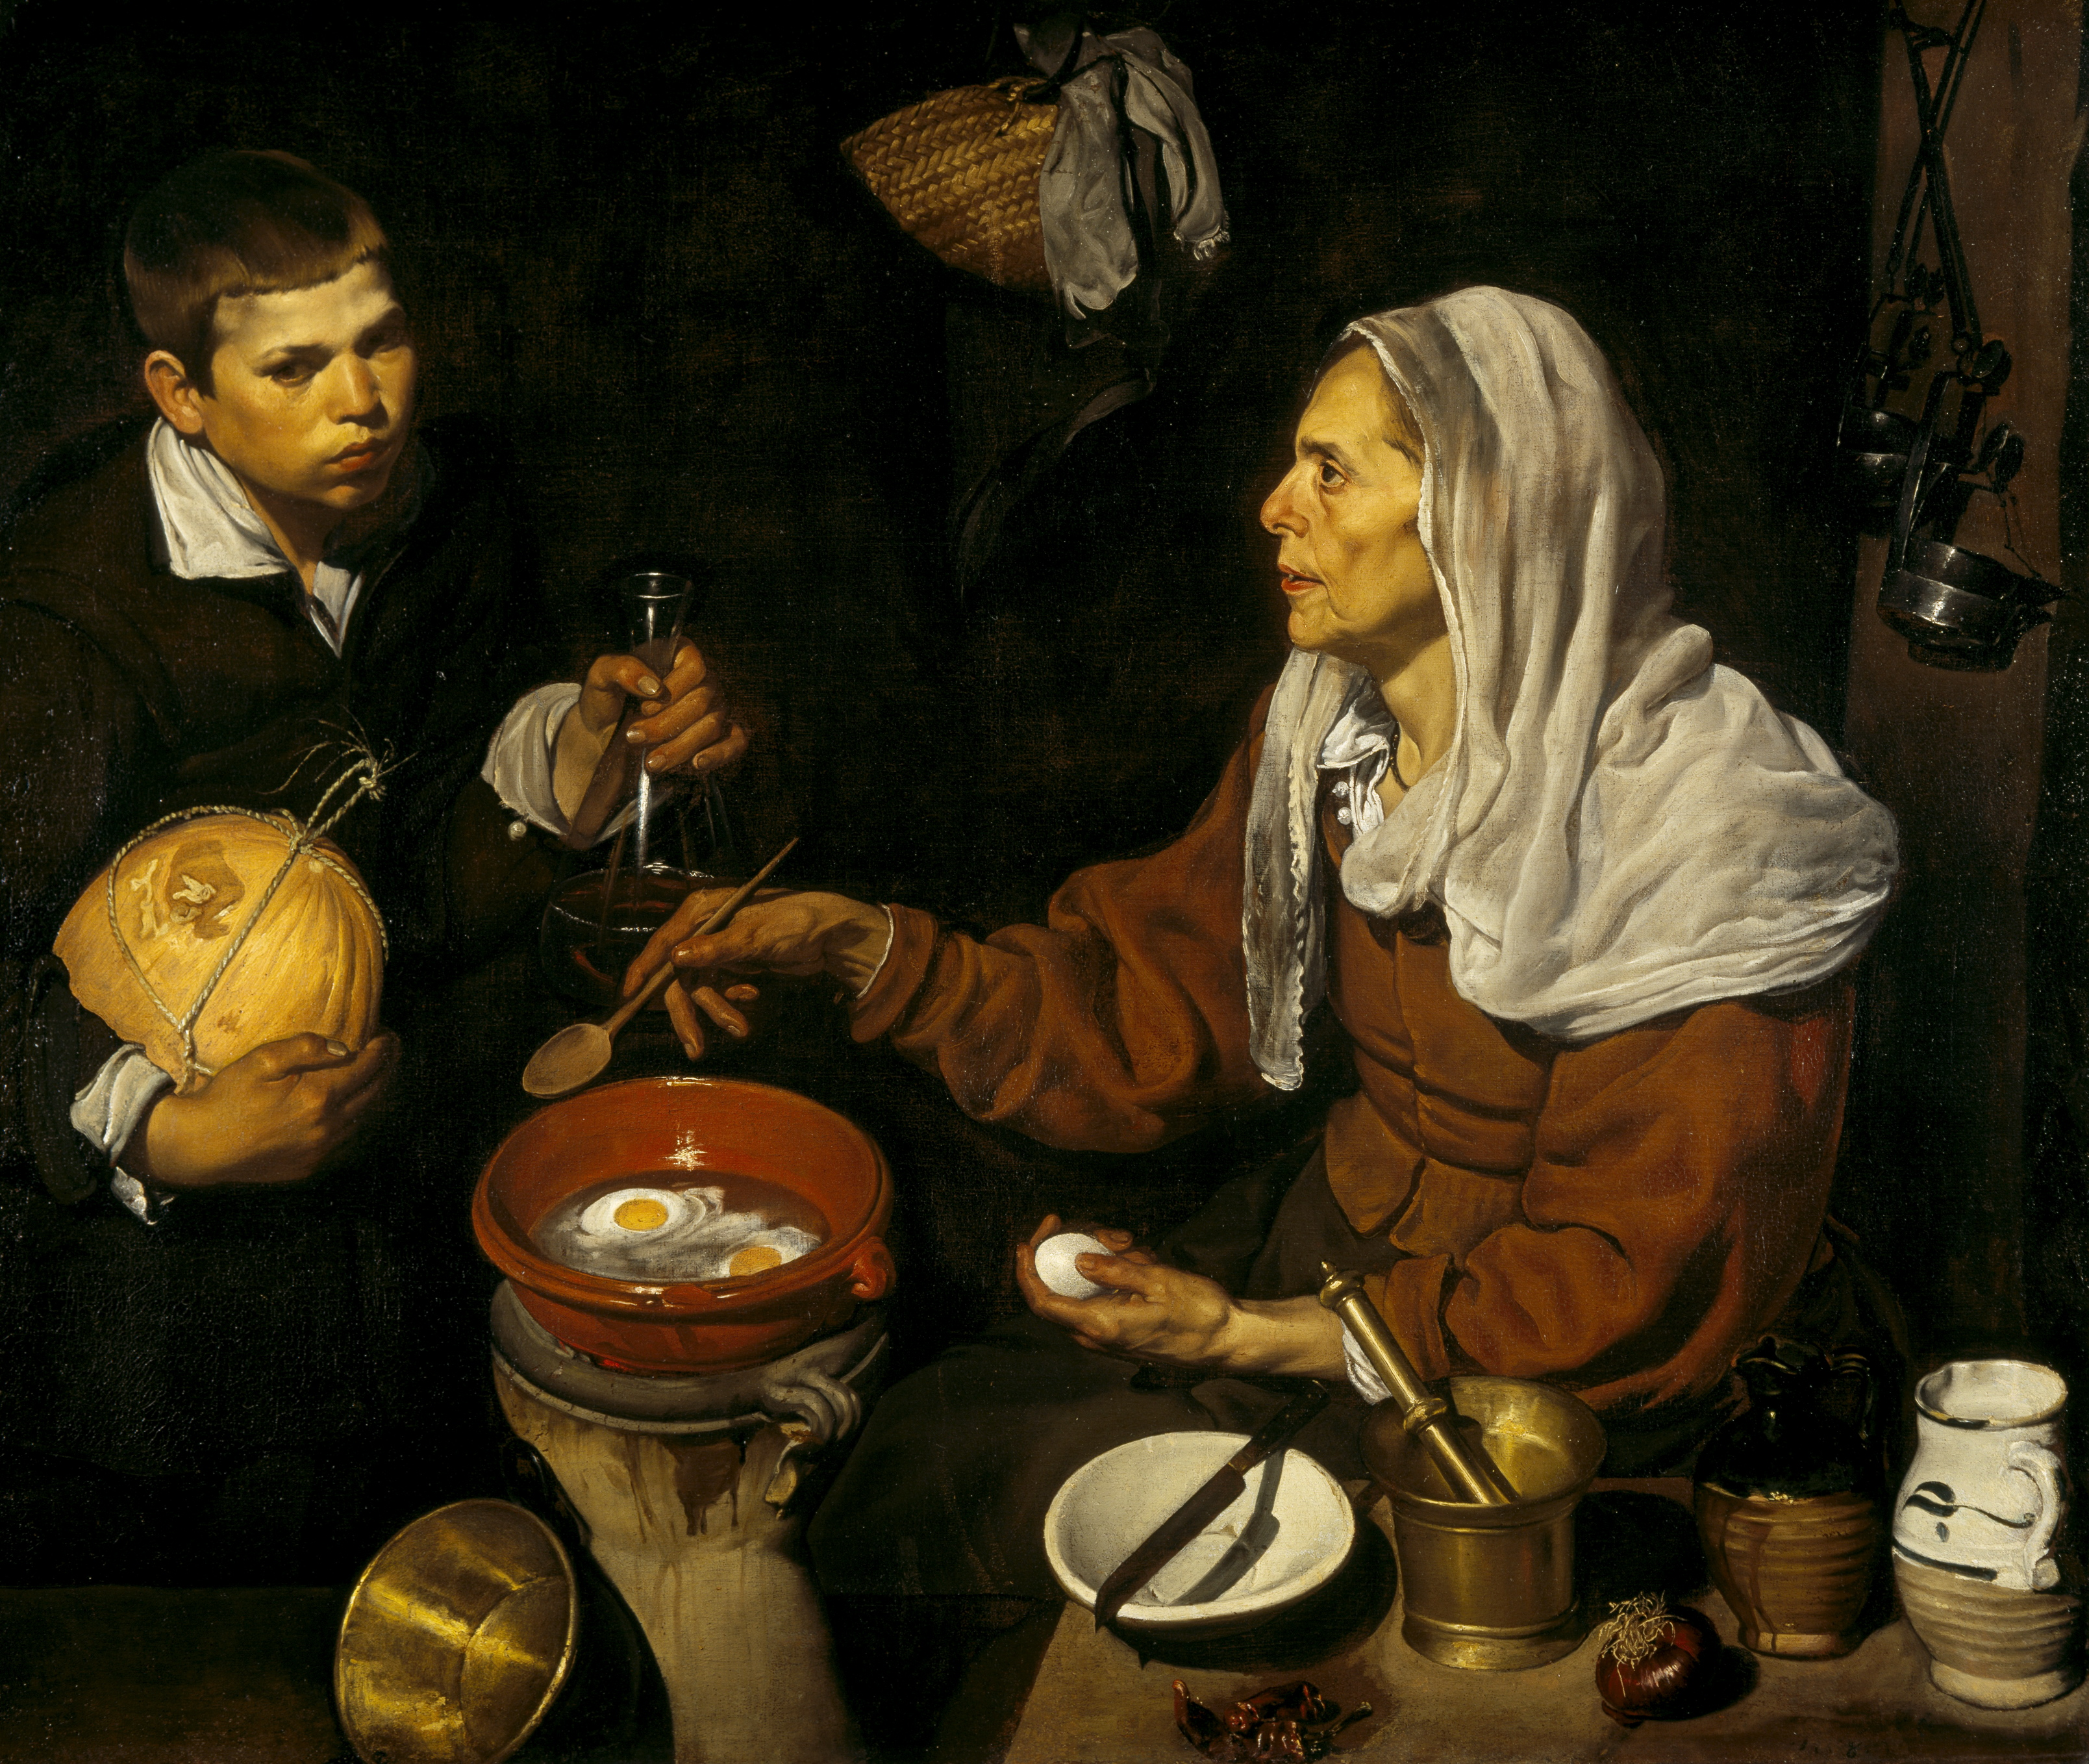 Diego Velázquez An old woman cooking eggs 1618 oil on canvas 100.5 x 119.5 cm Scottish National Gallery, Edinburgh © Trustees of the National Galleries of Scotland ***This image may only be used in conjunction with editorial coverage of The Greats exhibition, 24 Oct 2015 - 14 Feb 2016, at the Art Gallery of New South Wales. This image may not be cropped or overwritten. Prior approval in writing required for use as a cover. Caption details must accompany reproduction of the image. *** Media contact: Lisa.Catt@ag.nsw.gov.au *** Local Caption *** ***This image may only be used in conjunction with editorial coverage of The Greats exhibition, 24 Oct 2015 - 14 Feb 2016, at the Art Gallery of New South Wales. This image may not be cropped or overwritten. Prior approval in writing required for use as a cover. Caption details must accompany reproduction of the image. *** Media contact: Lisa.Catt@ag.nsw.gov.au